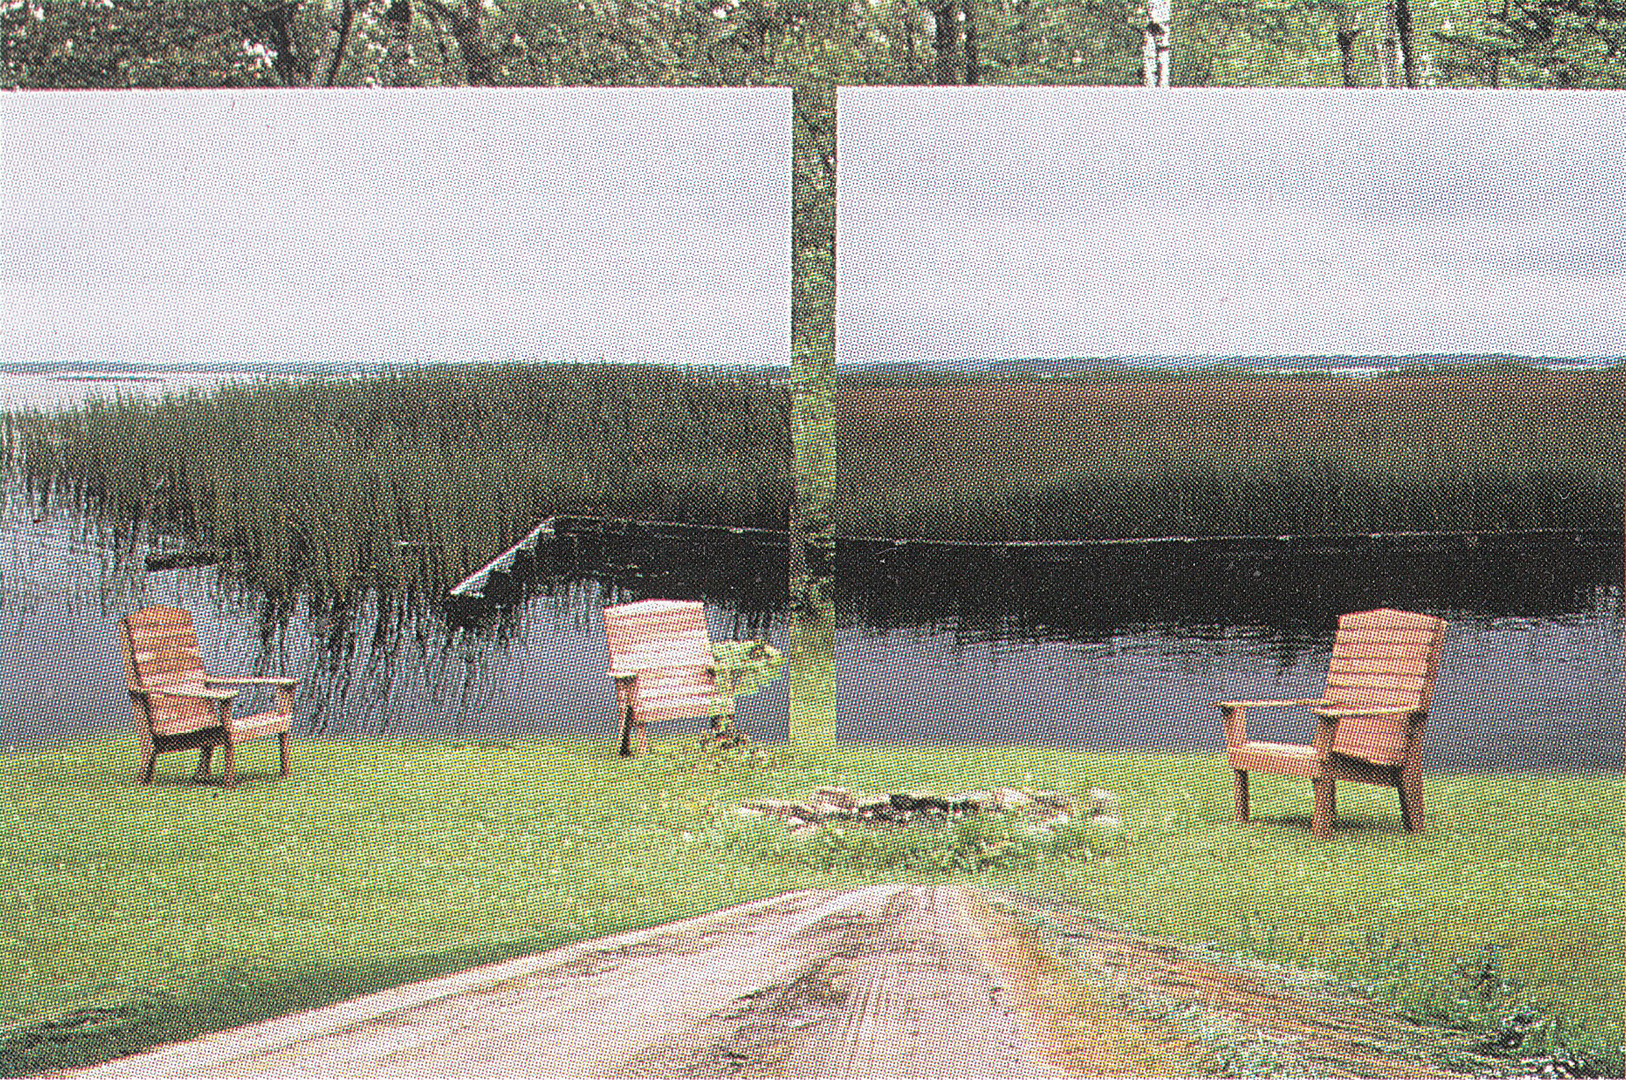 ©1993, Ann-Marie Rose, The Northwest Angle (2)